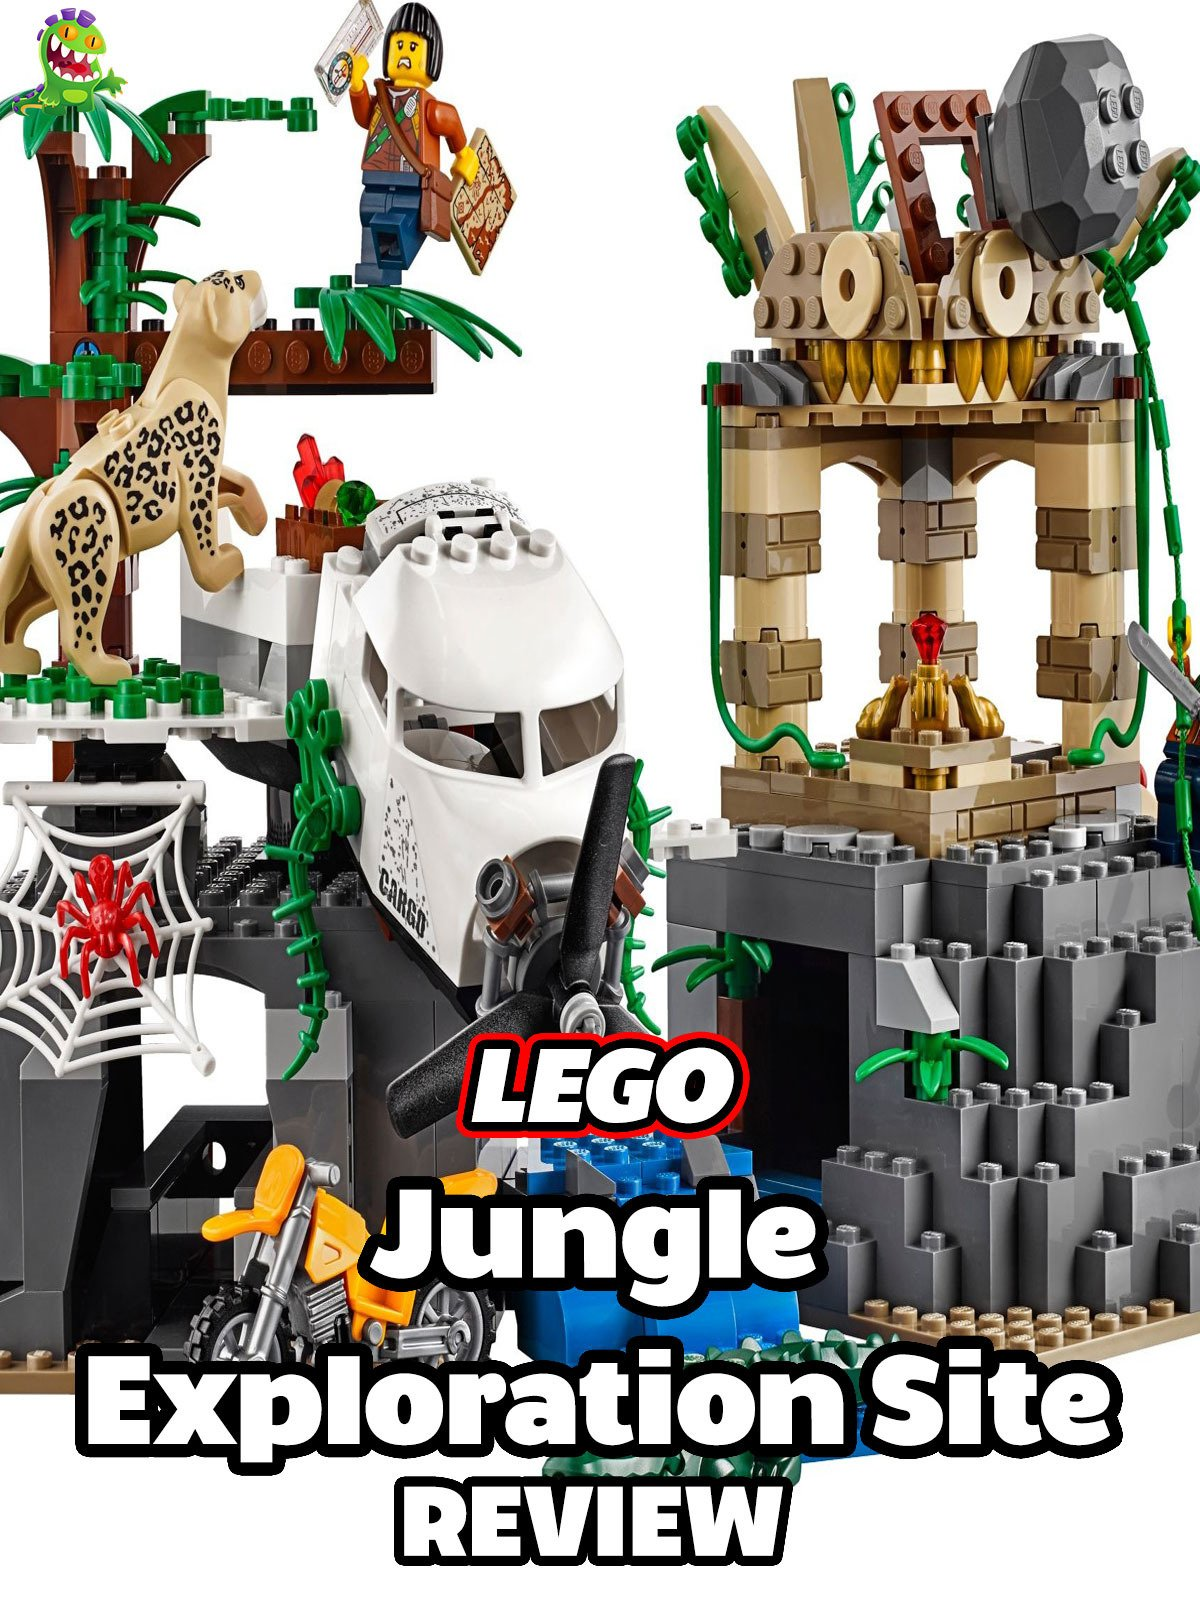 Clip: Lego Jungle Exploration Site Review